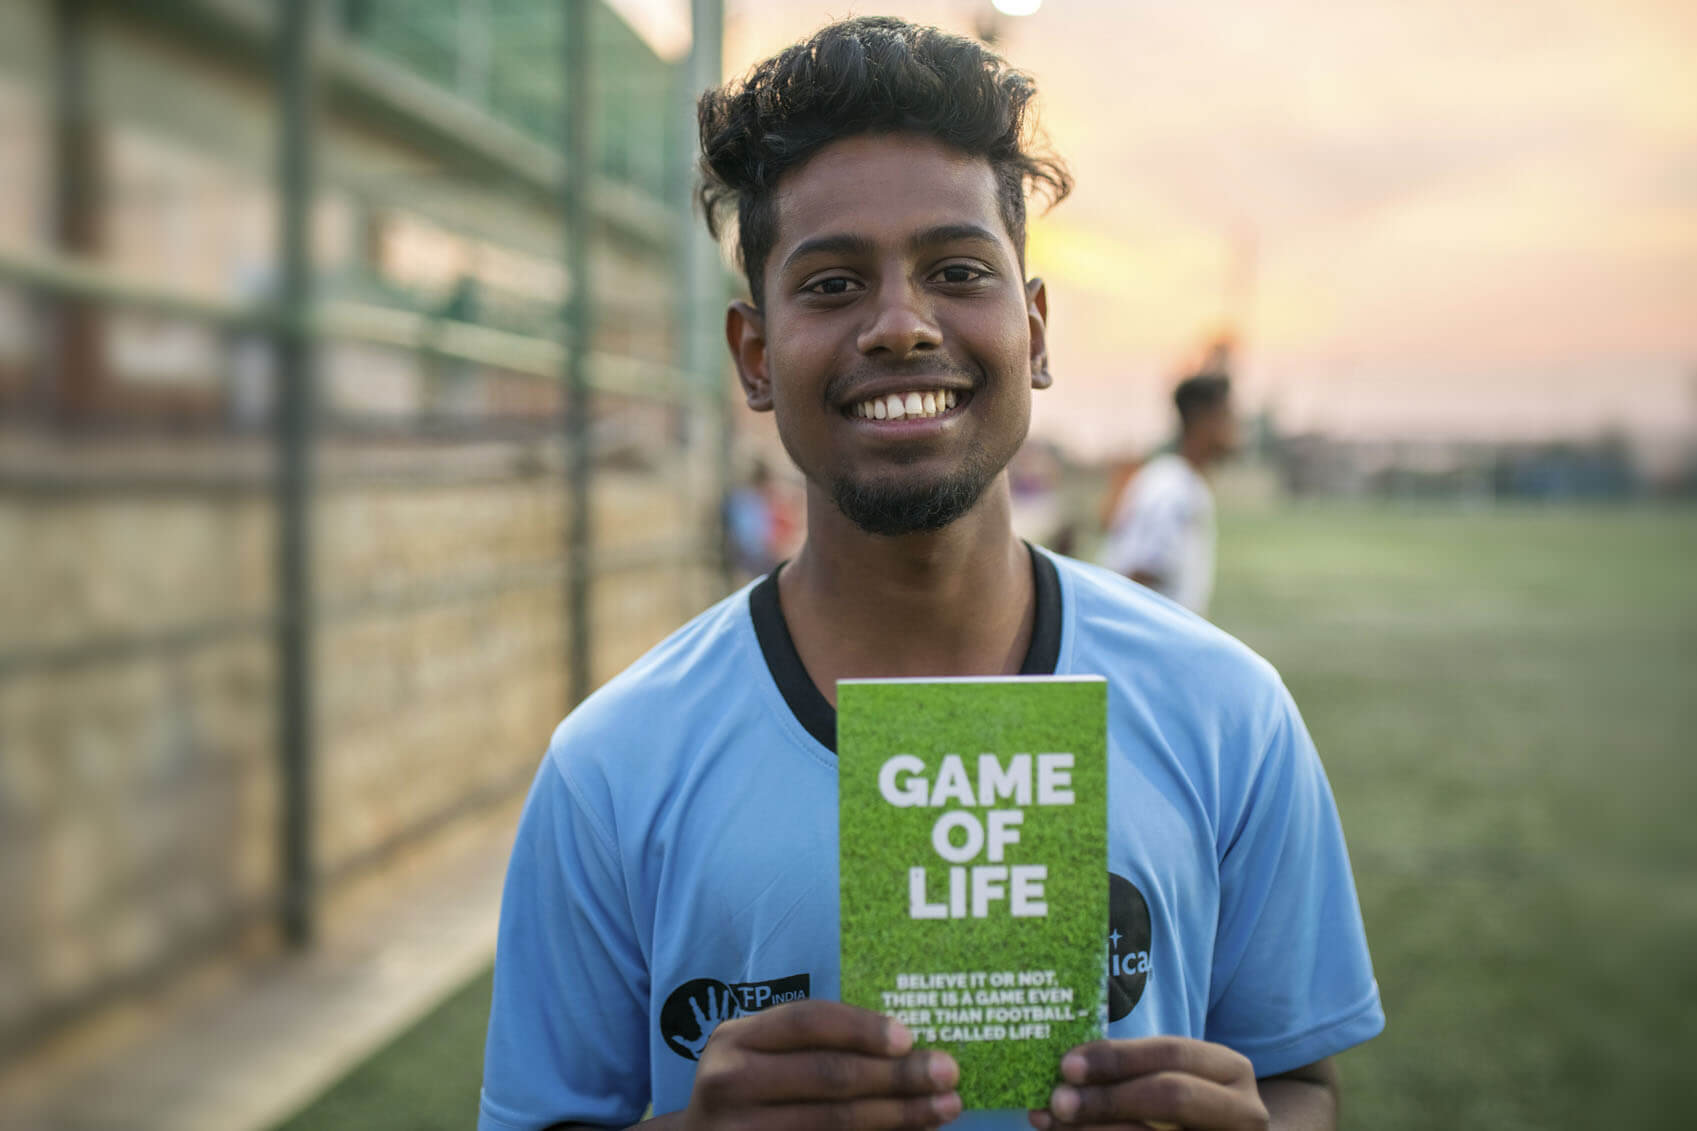 Teenage Boy Holding Game of Life Book